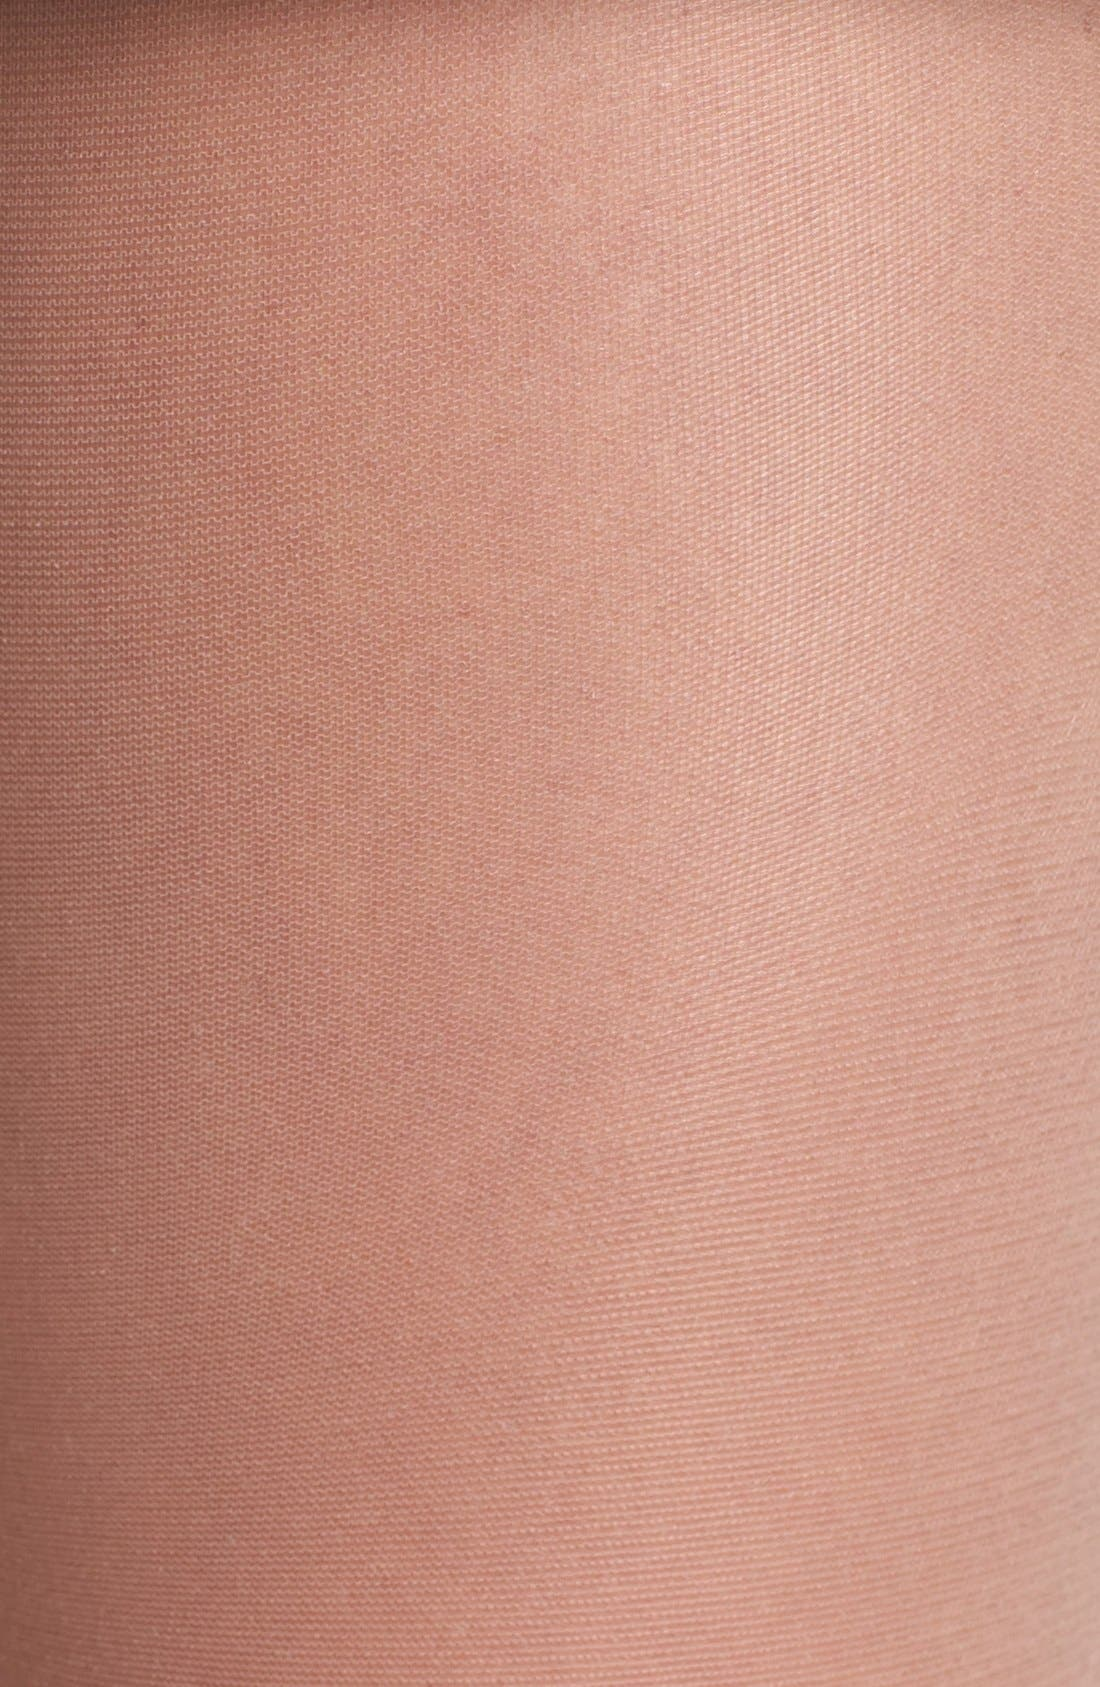 French Cut Sheer Pantyhose,                             Alternate thumbnail 6, color,